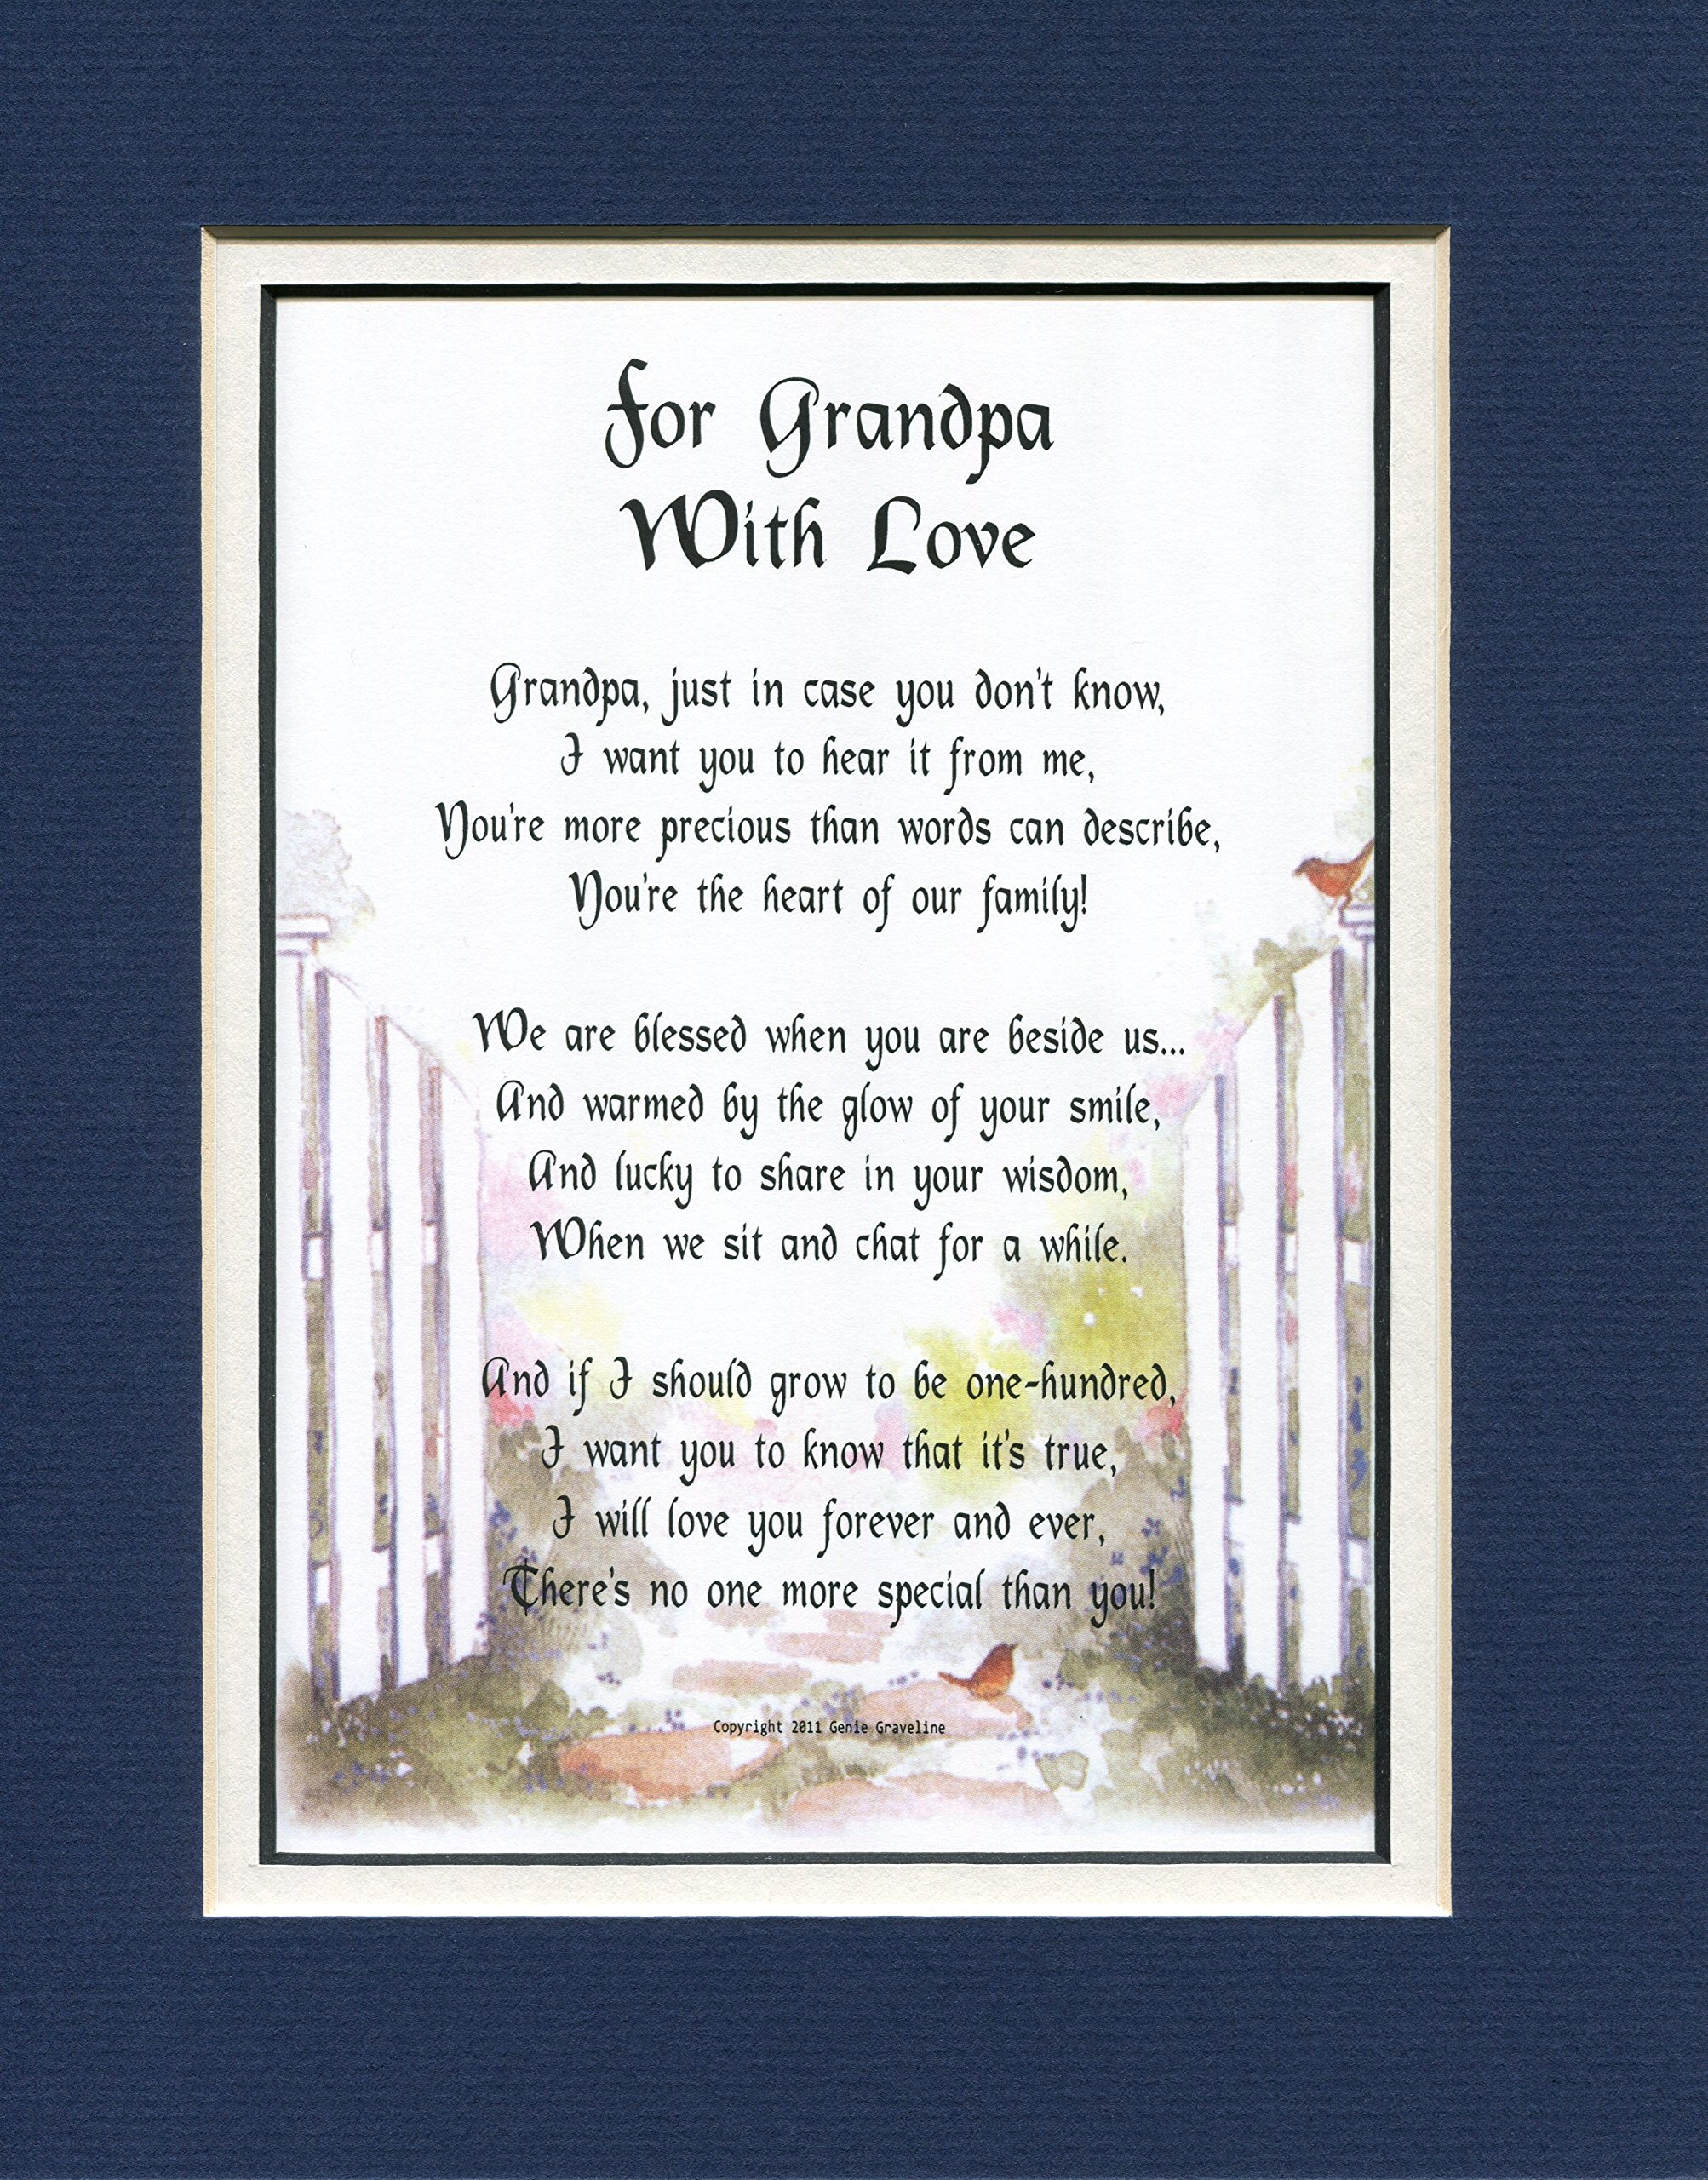 A Birthday Or Christmas Gift Present For Grandpa, # 45a, A Grandfather Poem.